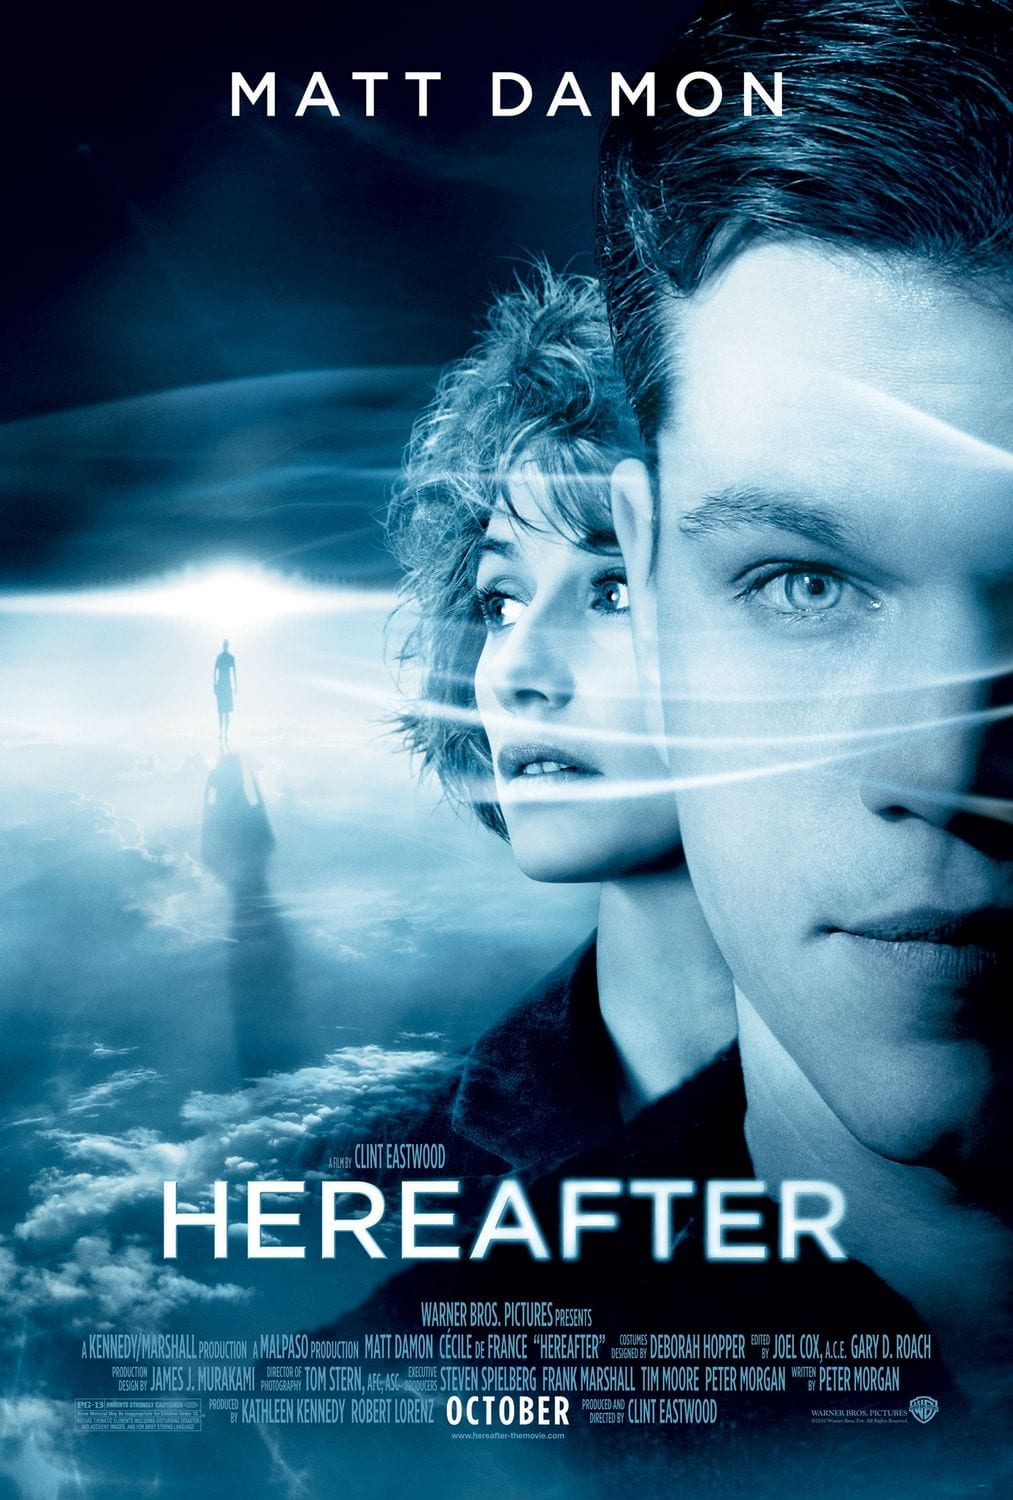 https://i2.wp.com/www.cinezapping.com/wp-content/uploads/2010/09/hereafter_xlg.jpg